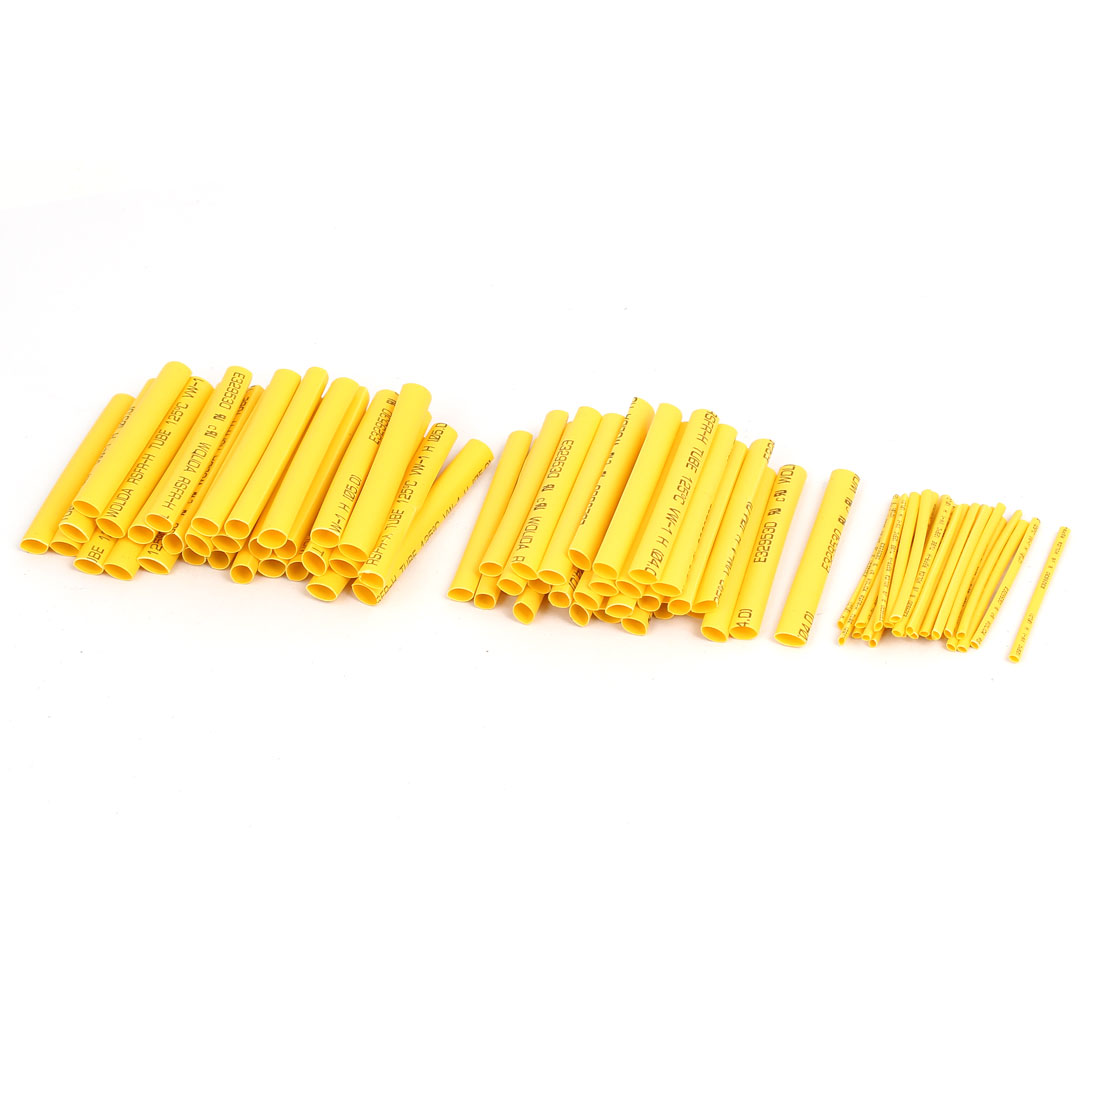 Insulated Heat Shrink Tube Sleeving Wrap Wire Kit 3 Sizes Yellow 90pcs